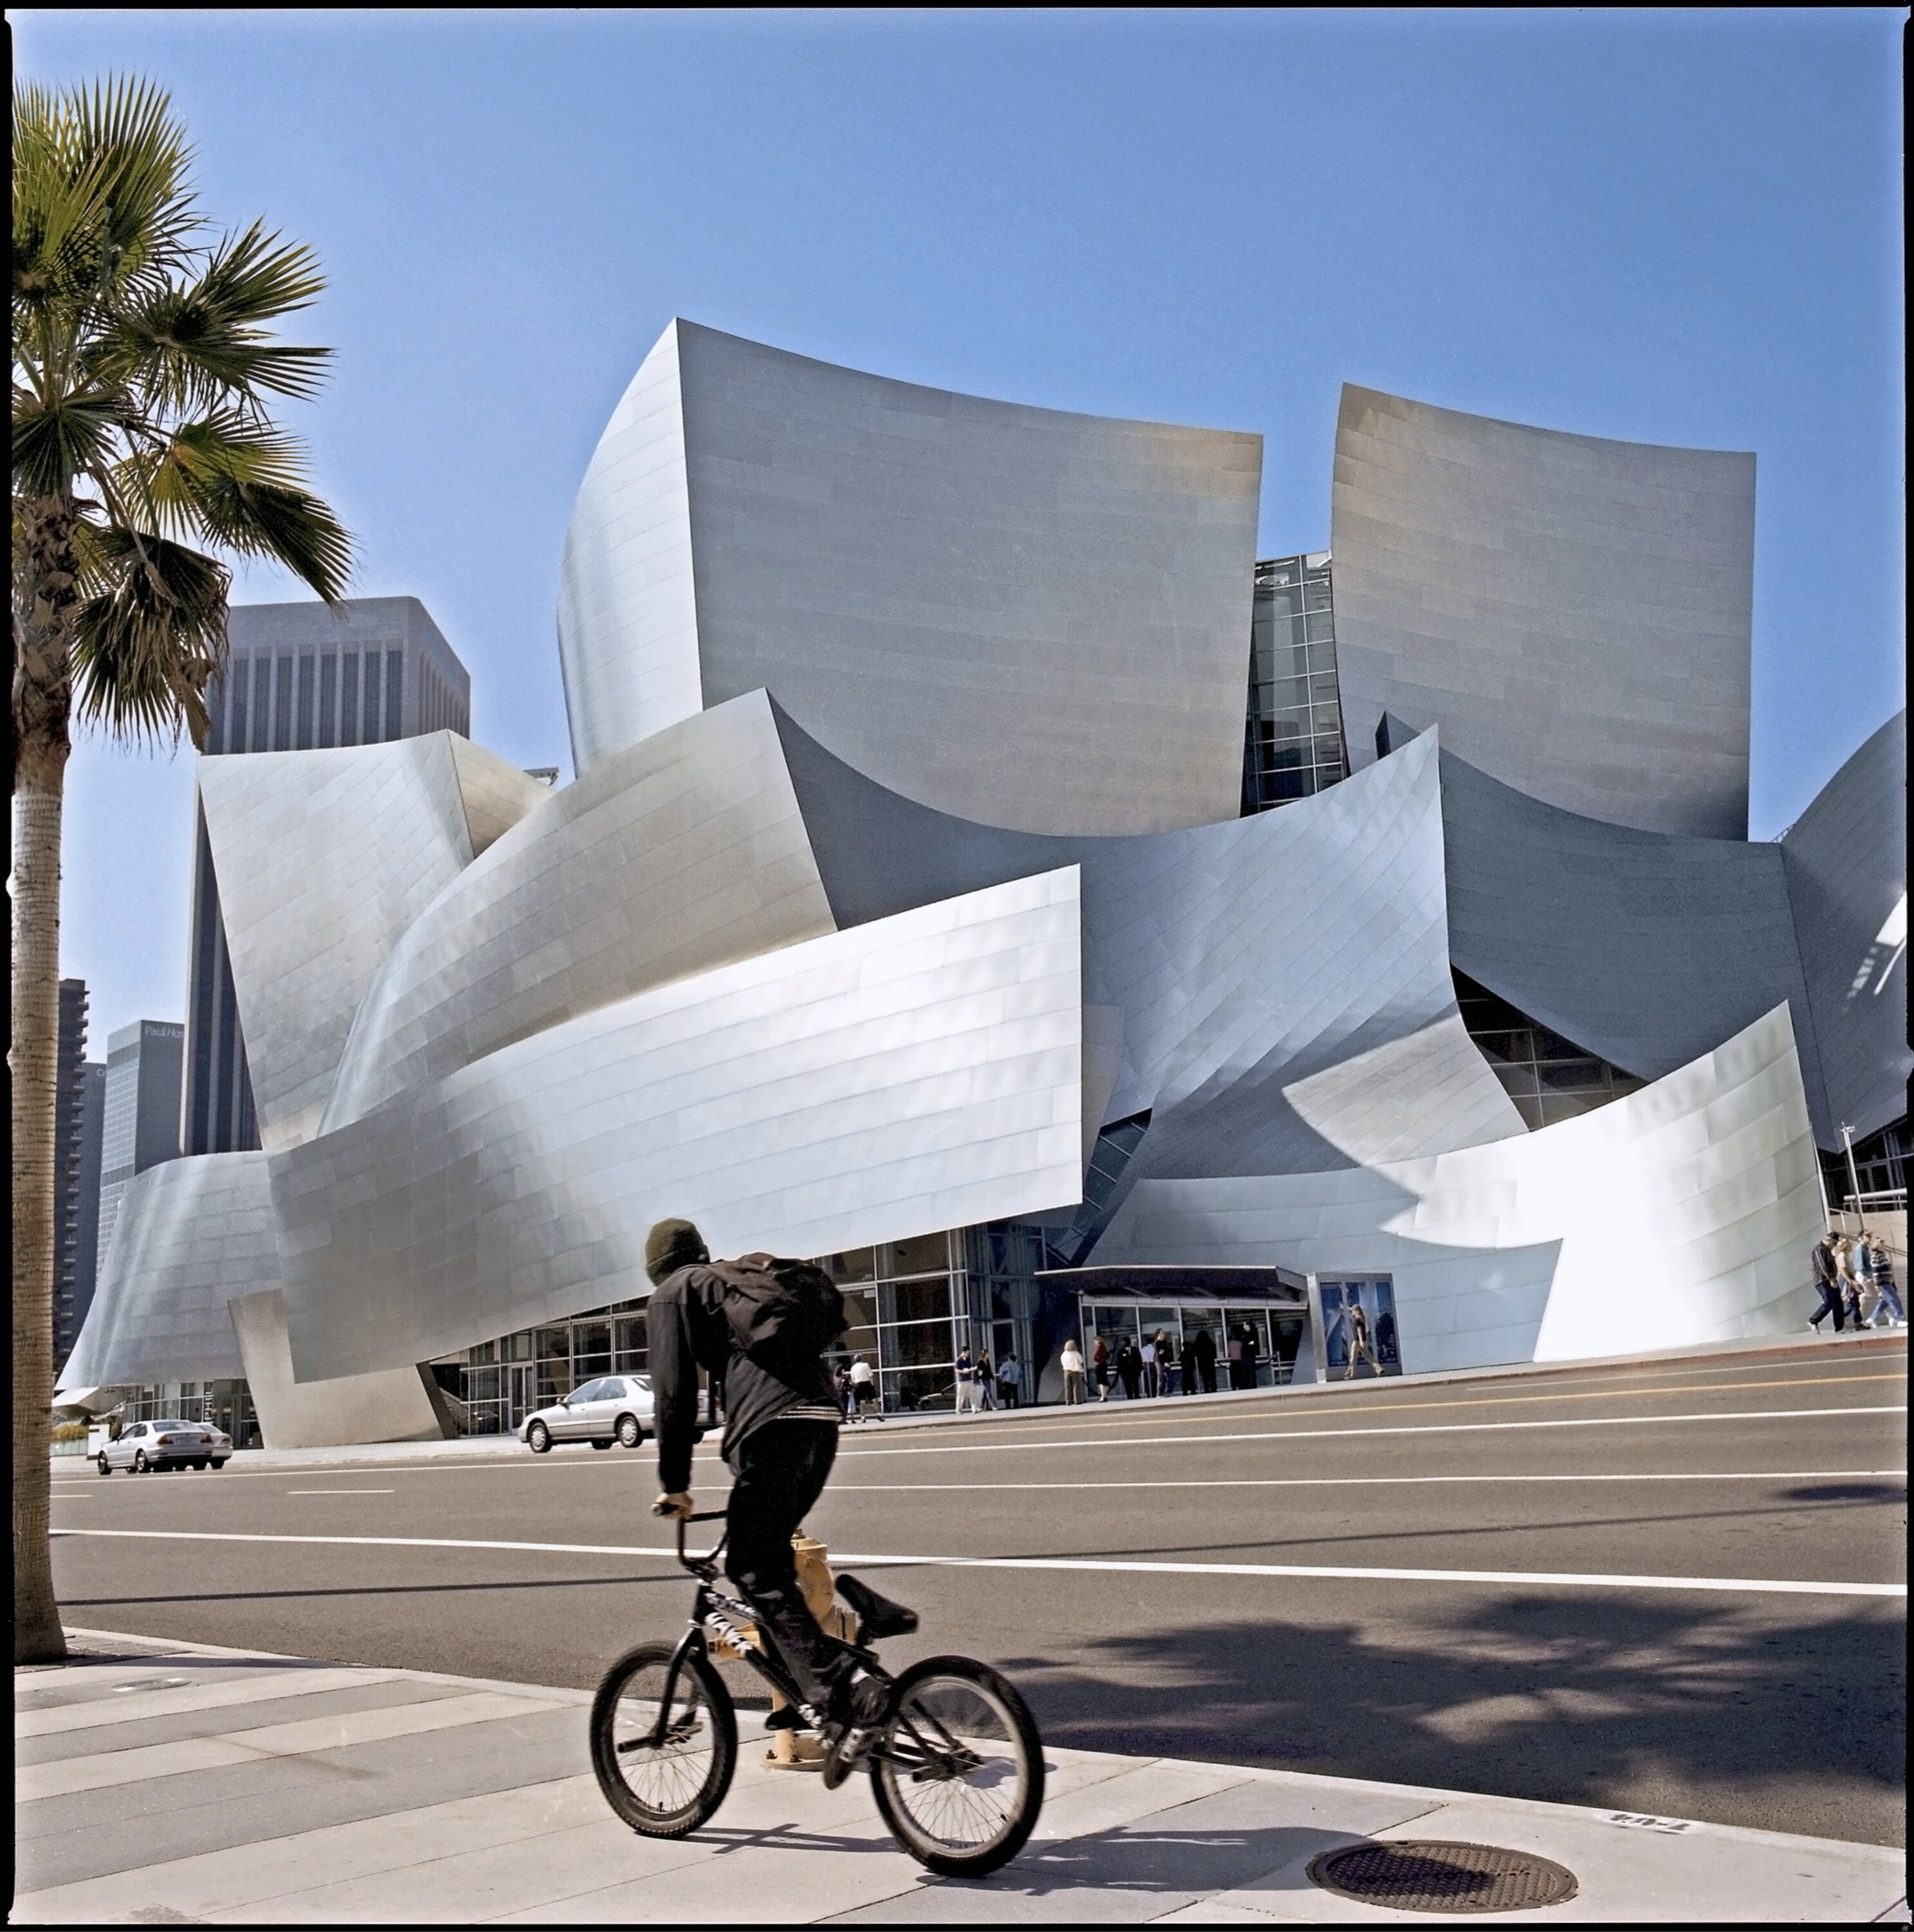 Walt Disney Concert Hall, Los Angeles, California, Frank Gehry architect, 2005